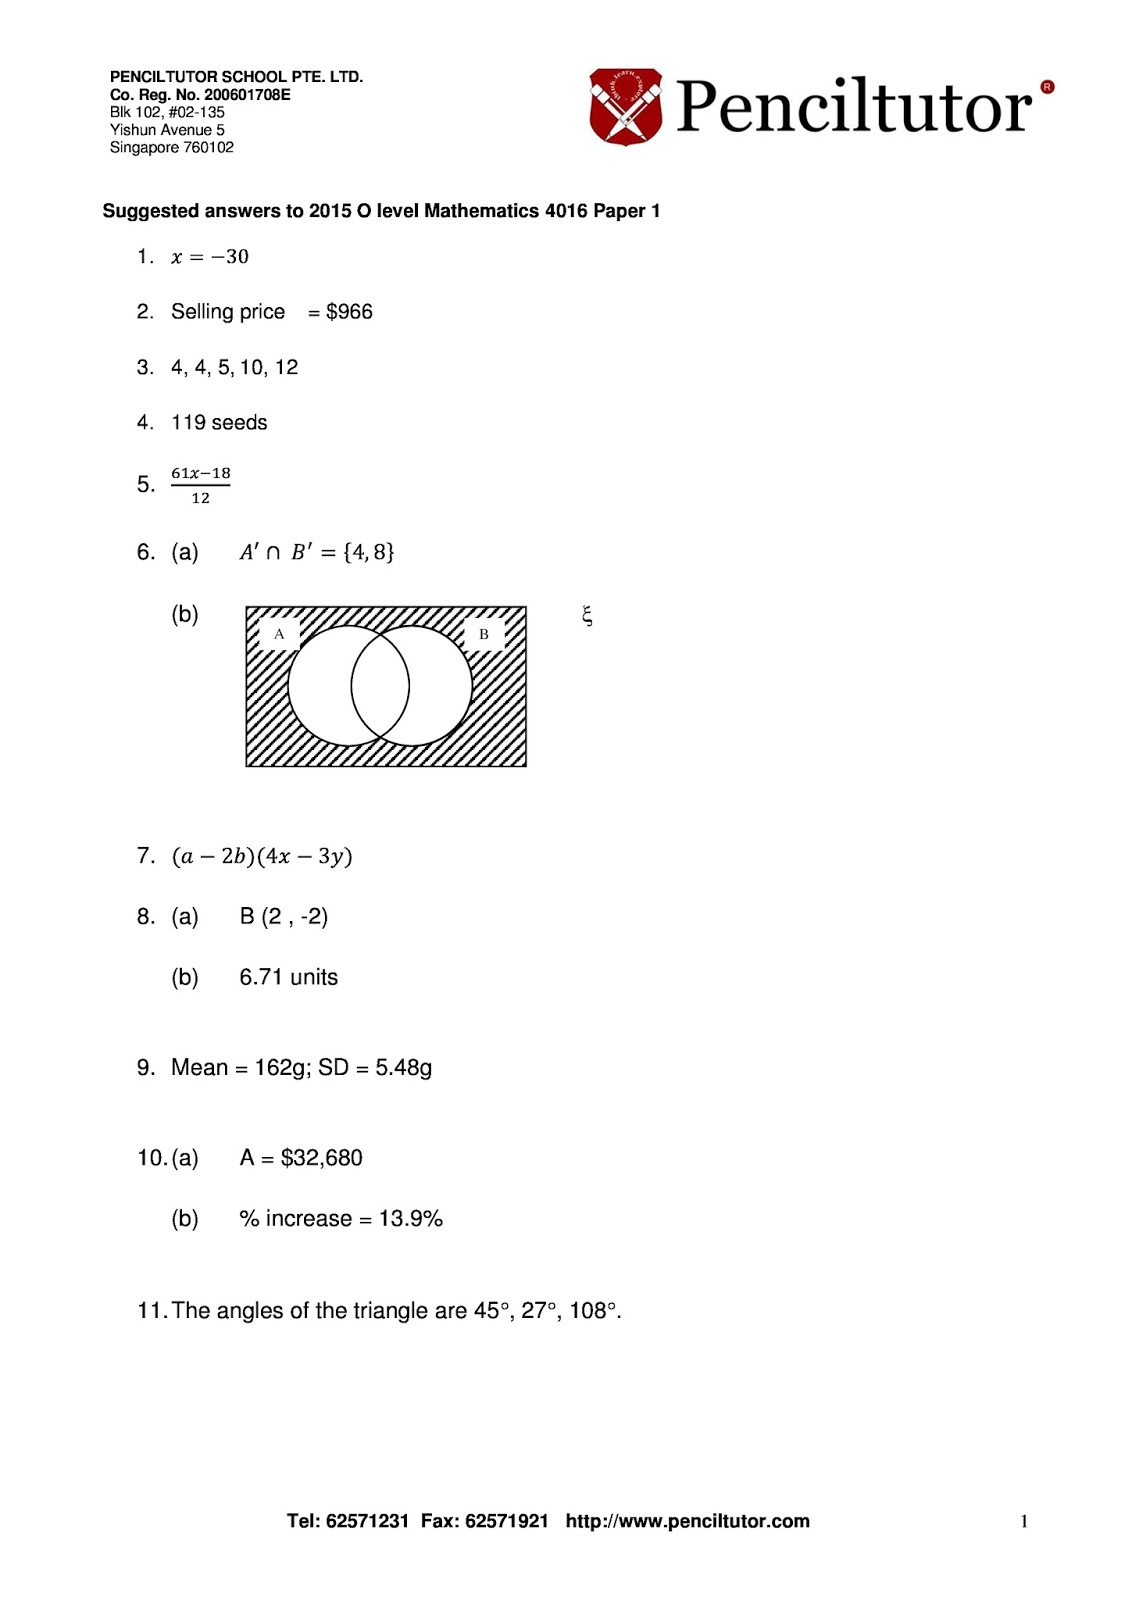 Penciltutor S Answers To O Level And Igcse Papers Suggested Answers To O Level E